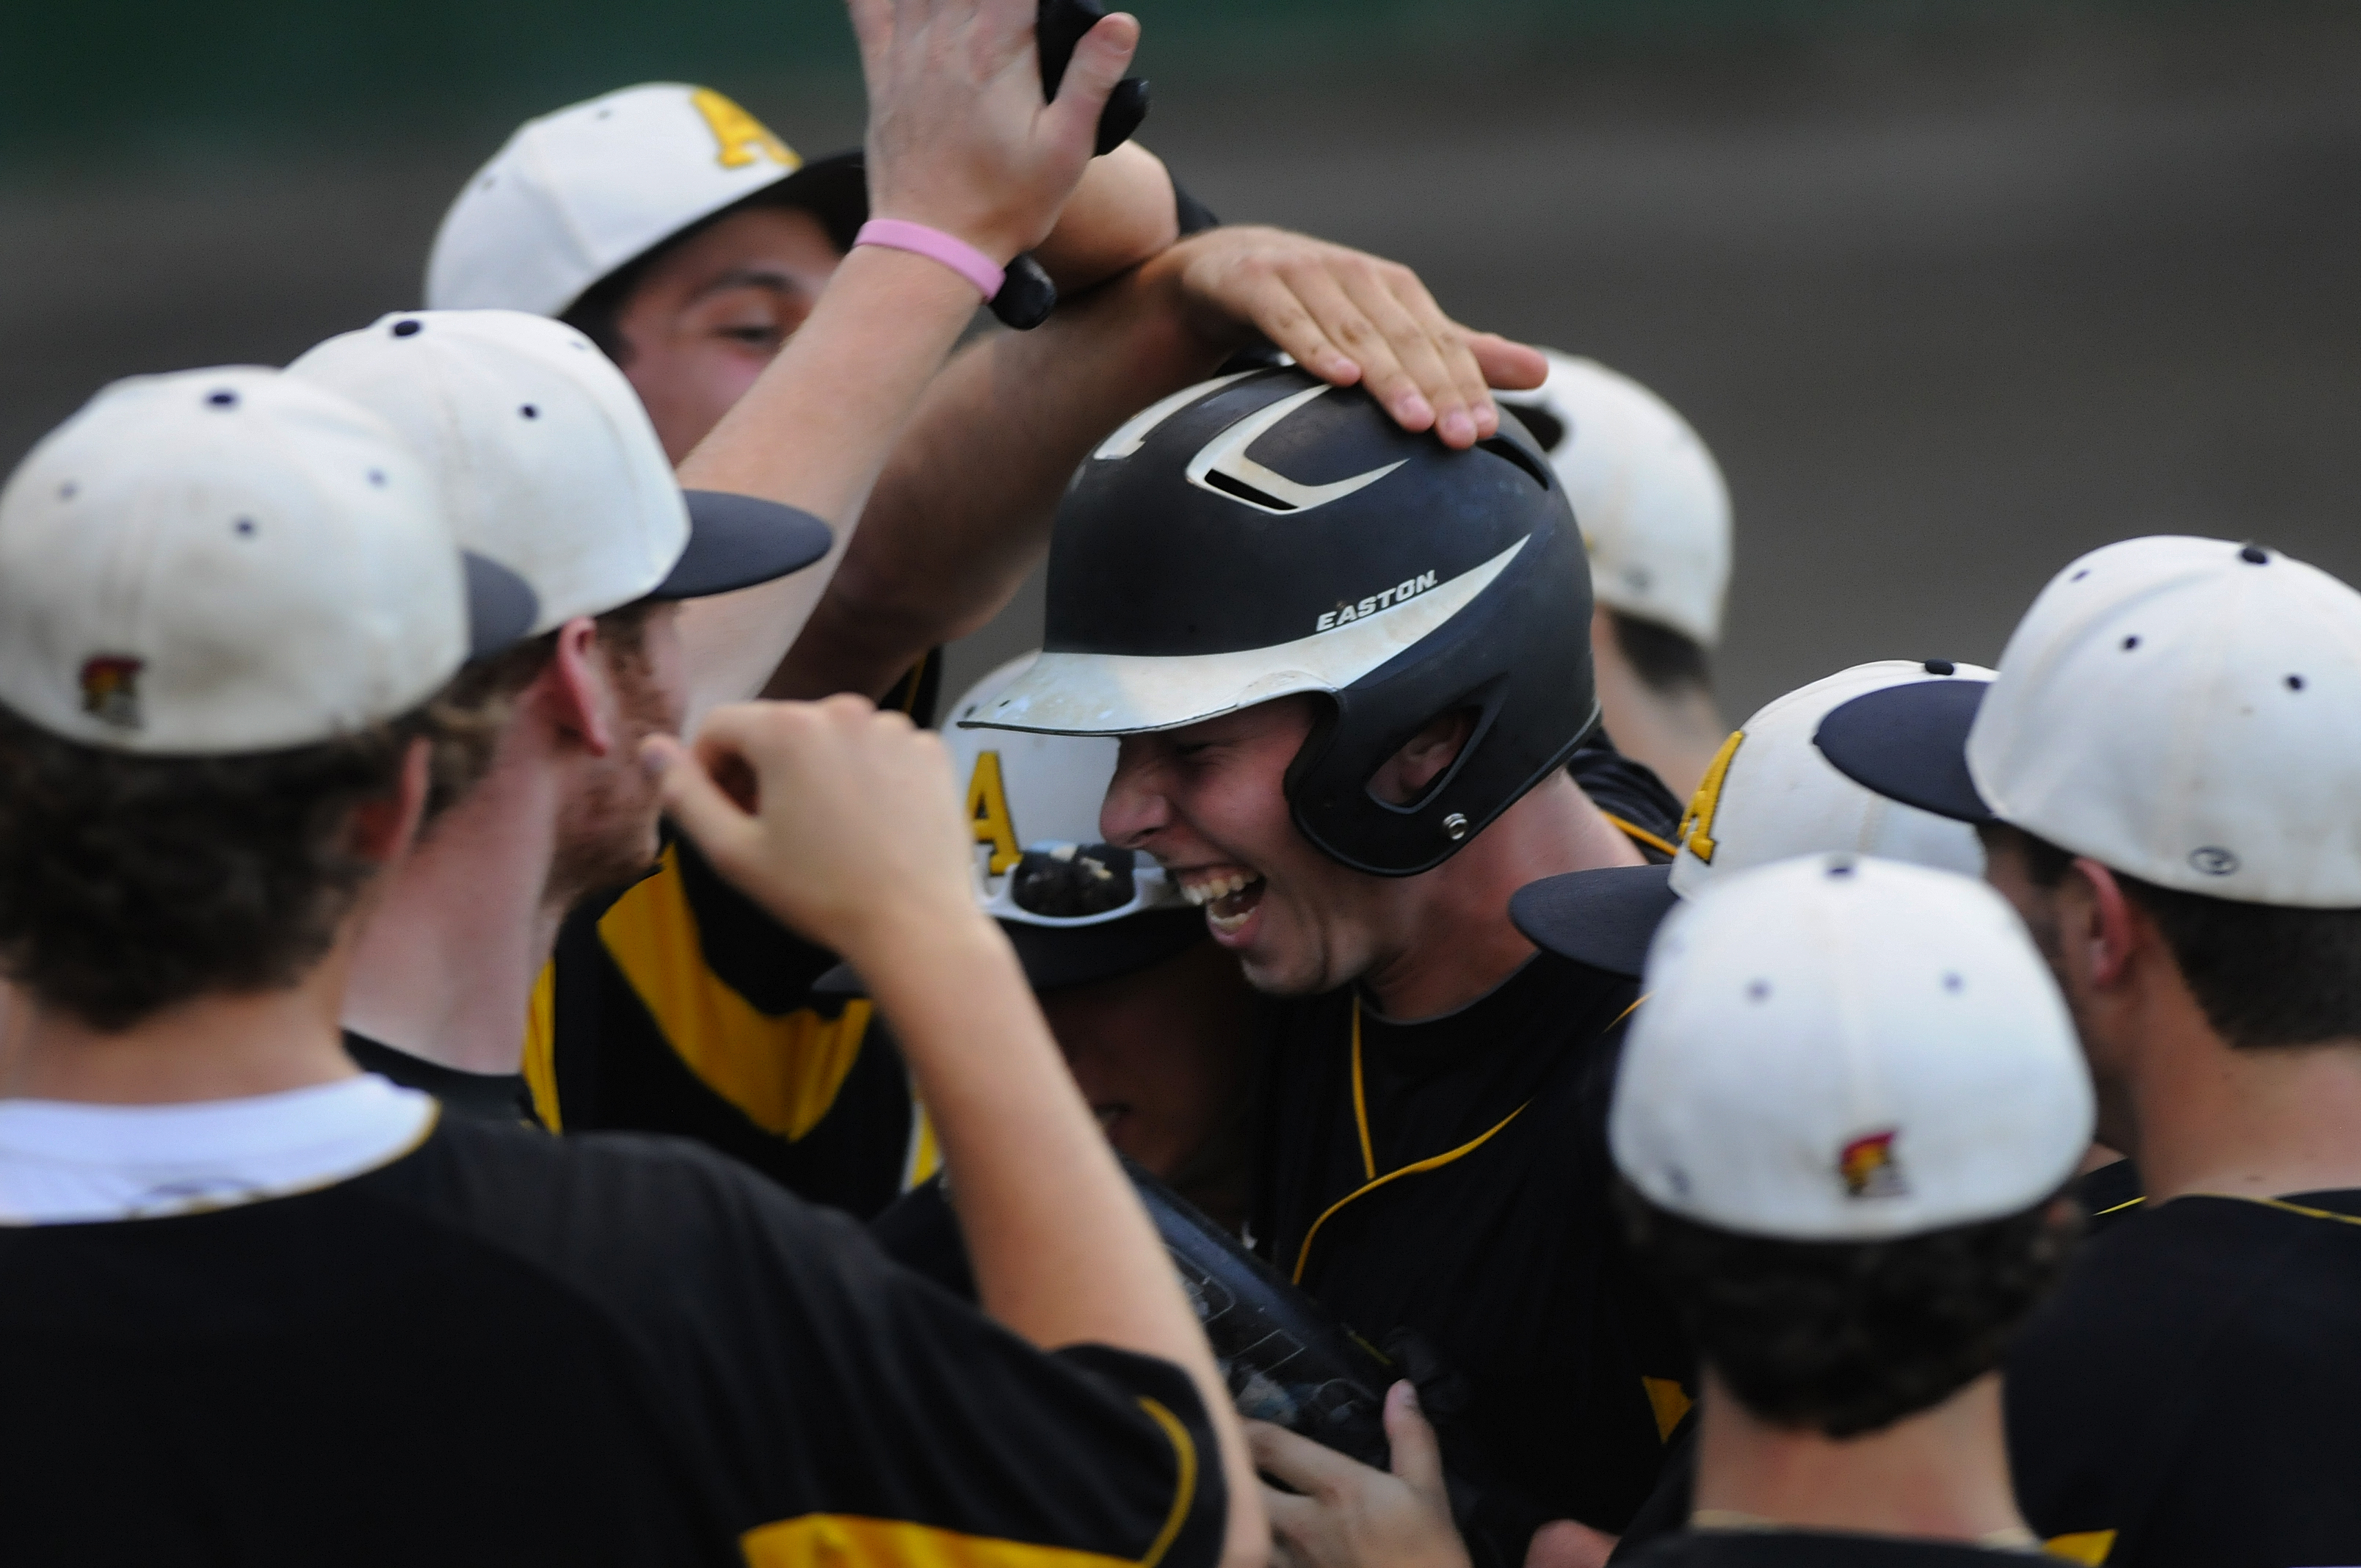 Amity Beats Southington to Win CIAC Class LL Baseball Championship